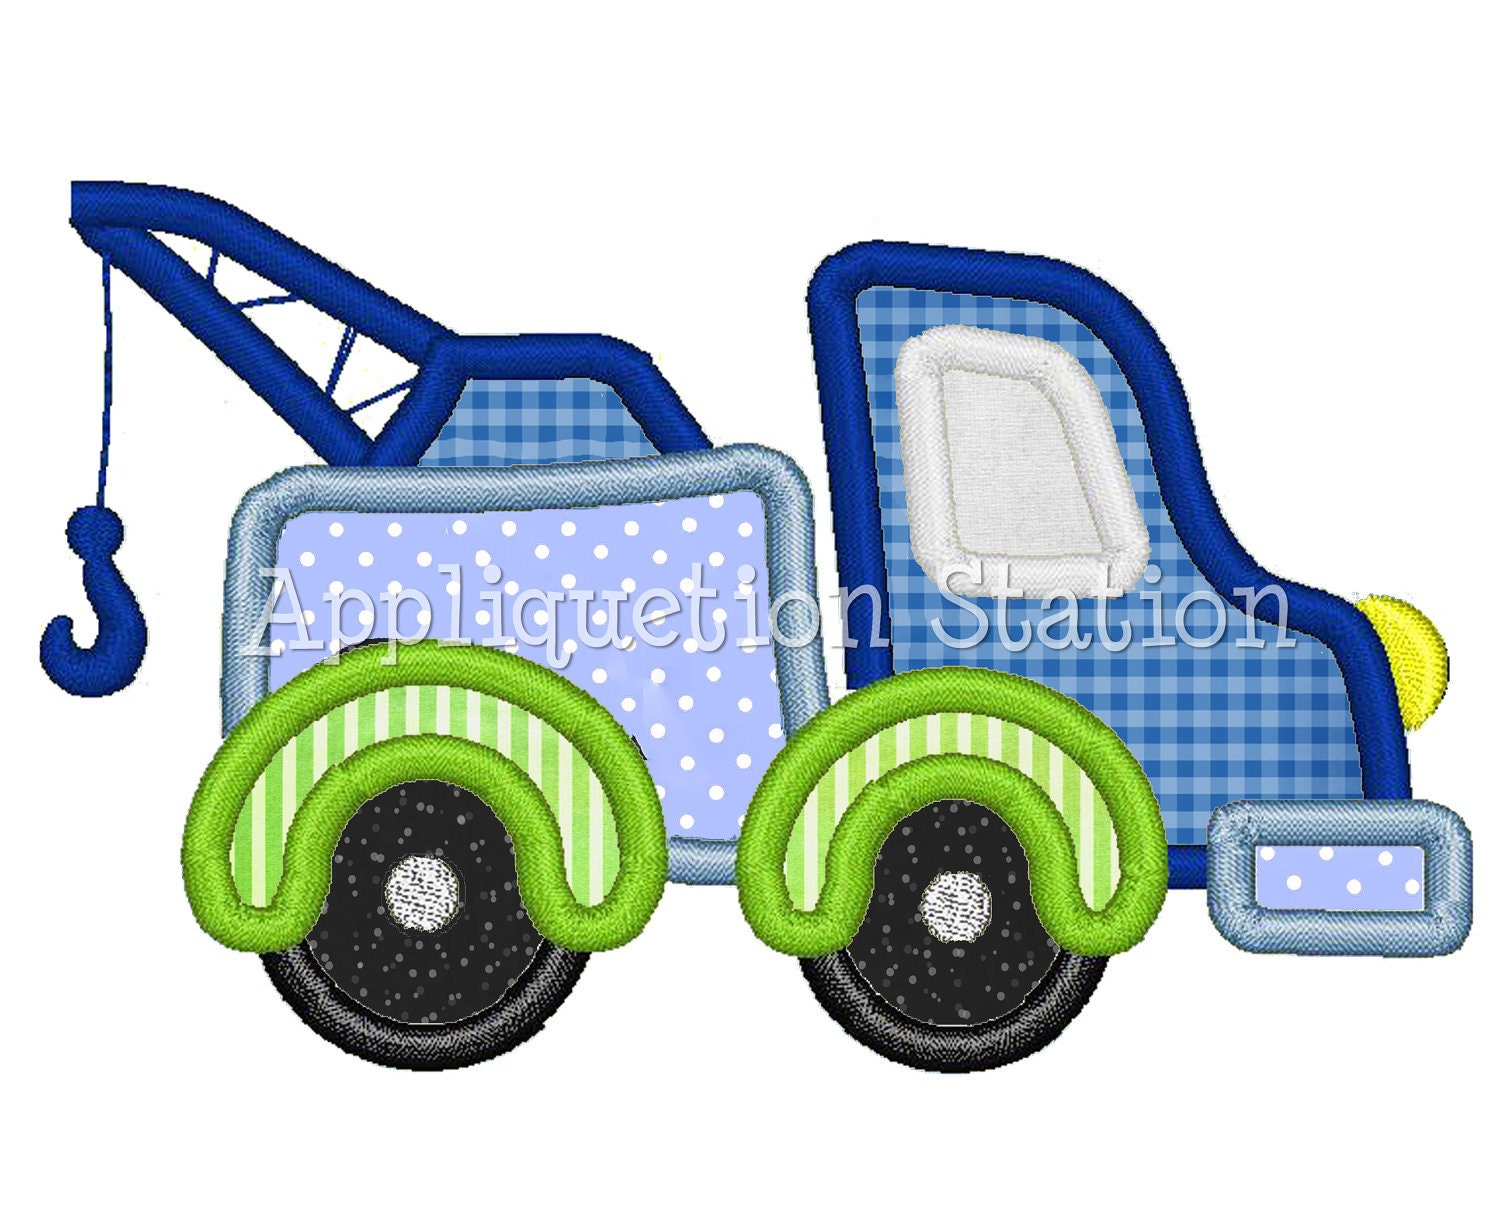 Tow Truck Applique Machine Embroidery By AppliquetionStation